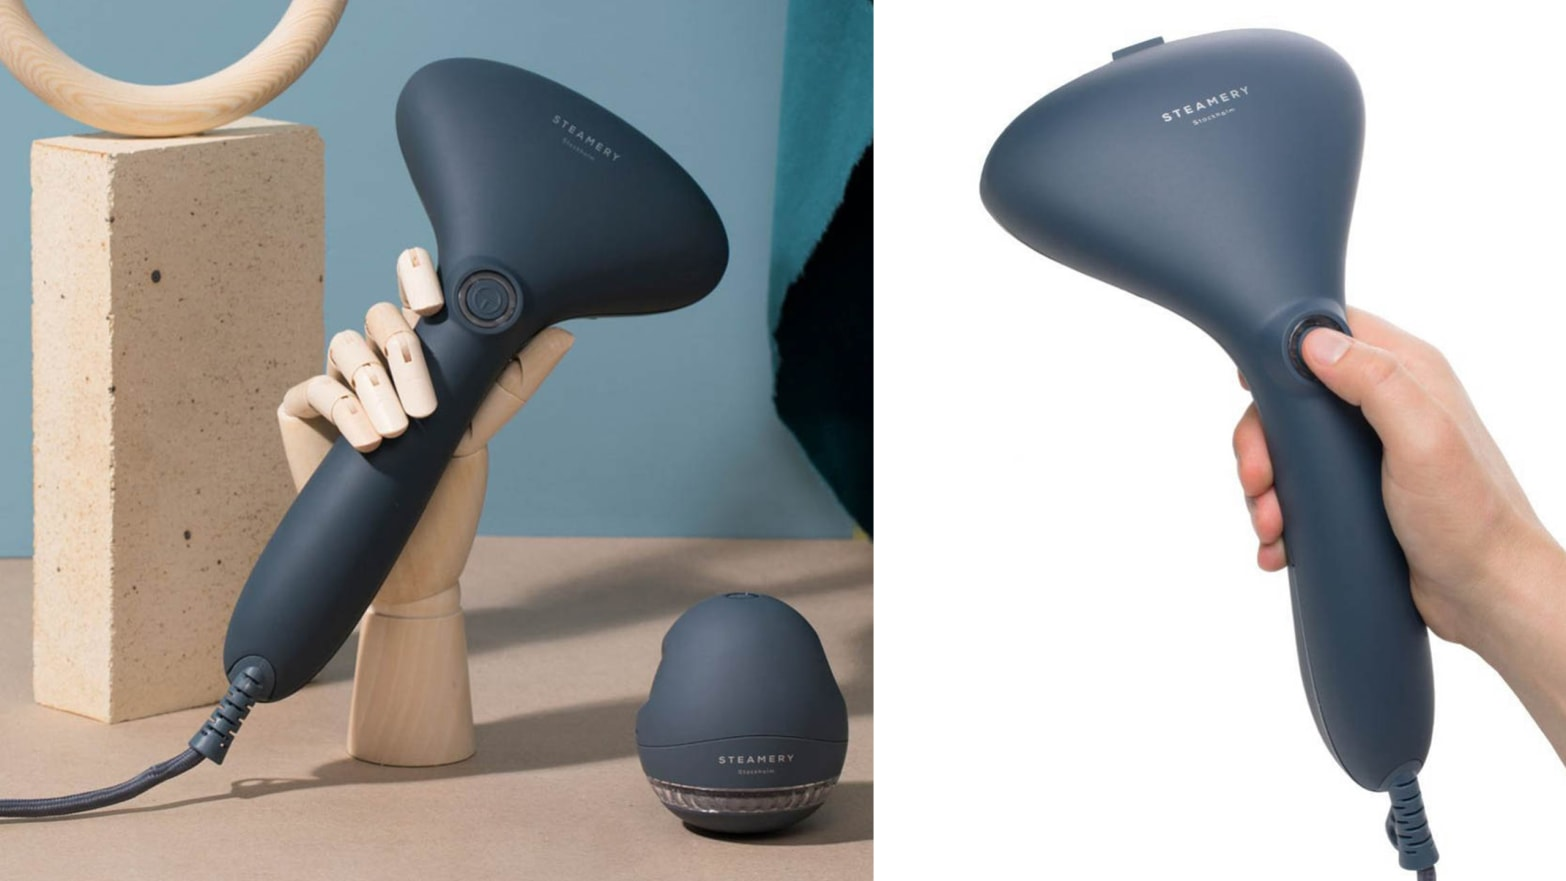 Travel Steamers from Steamery, Amazon, and More